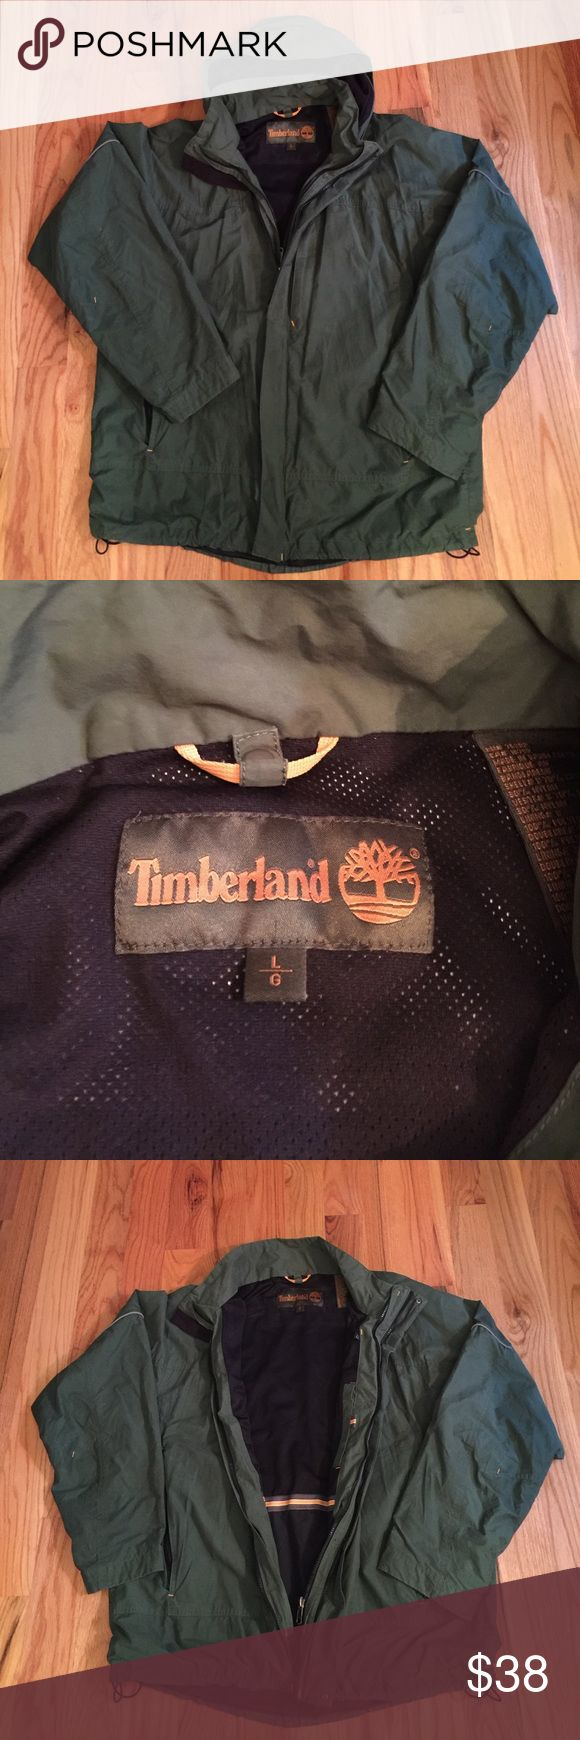 Timberland Coat This Timberland Coat is great to wear in all weather conditions while staying comfortable as well. Not heavy, but has several layers built in that helps you stay dry but able to keep movement! Detachable hood, several outside pocket as well as an inside pocket. Coat is Hunter Green and in great condition! Timberland Jackets & Coats